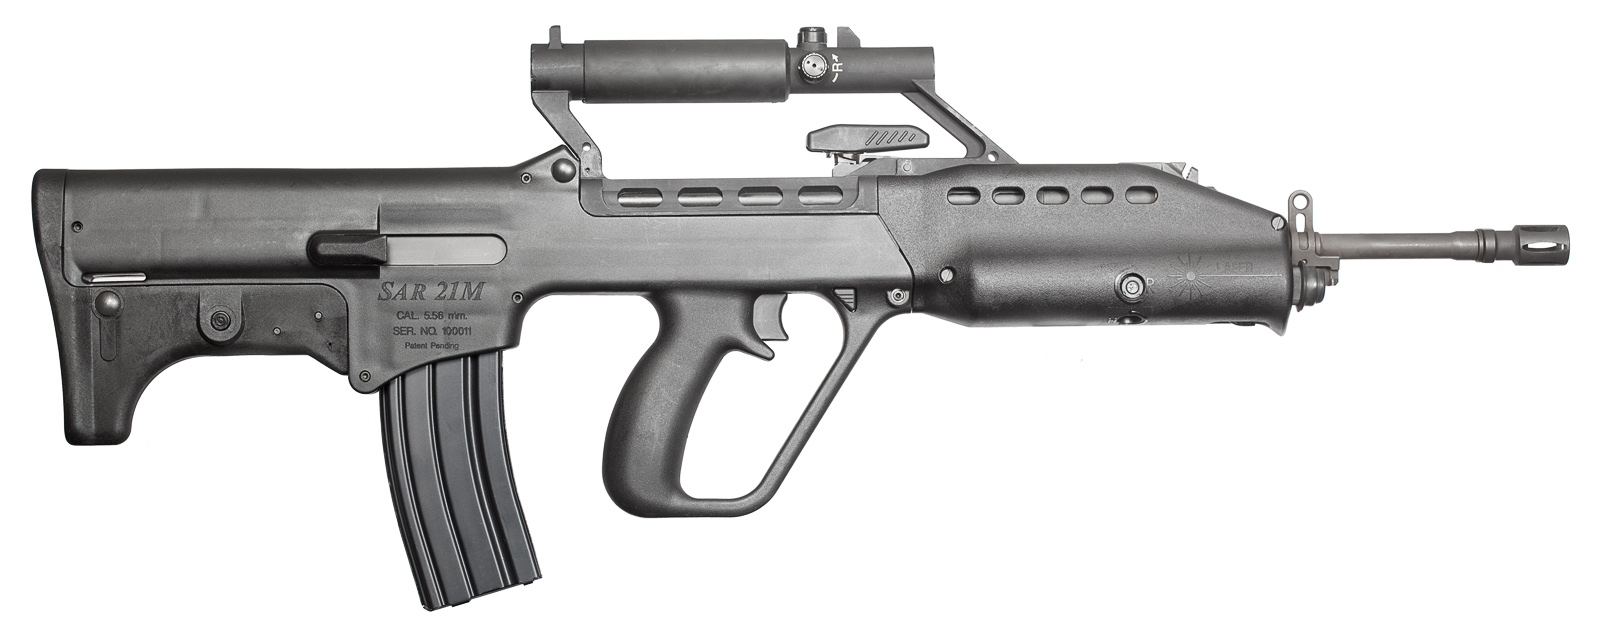 SAR21right_3893web.jpg